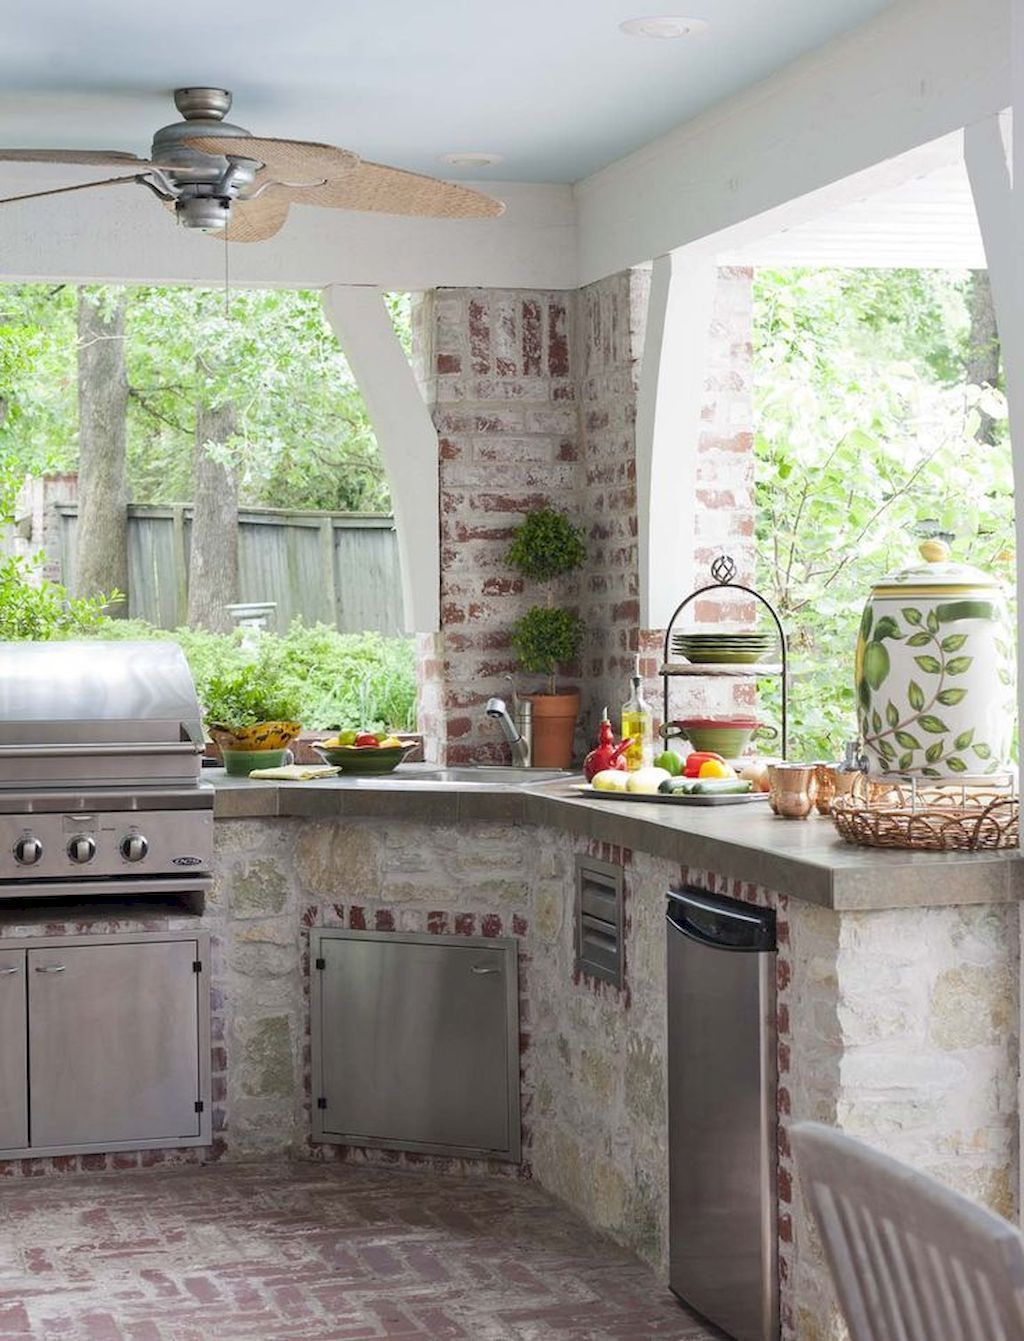 incredible outdoor kitchen design ideas on backyard in